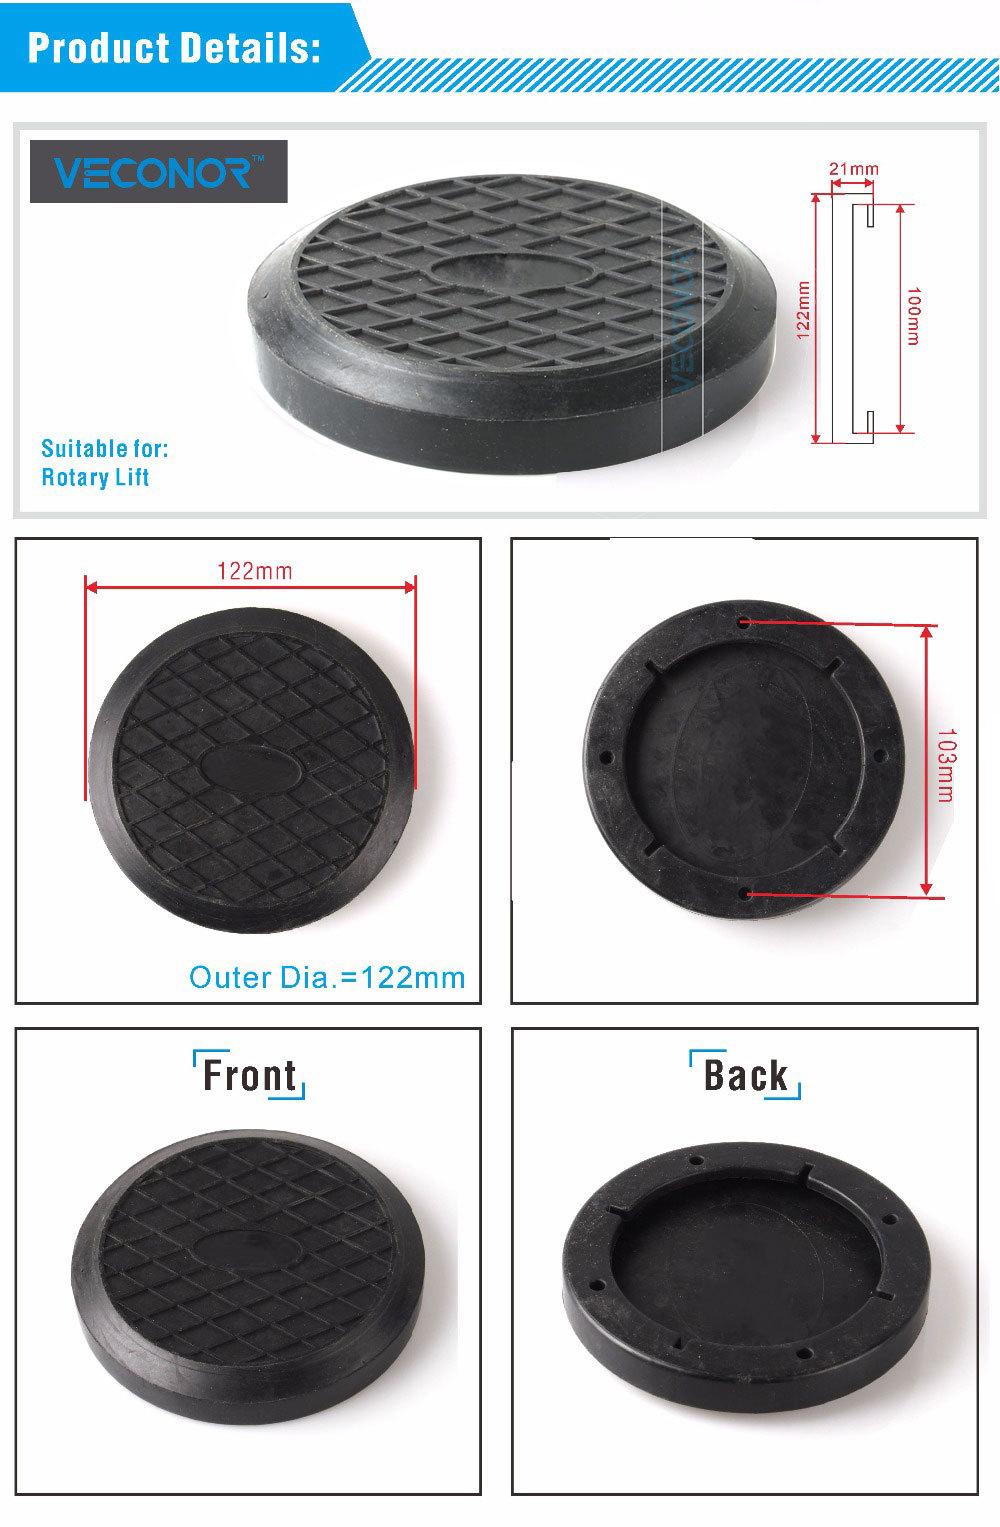 Power Tool Accessories Veconor Lifting Arm Rubber Pad For Rotary Car Lift Accessories Two Post Lift Spareparts Consumables